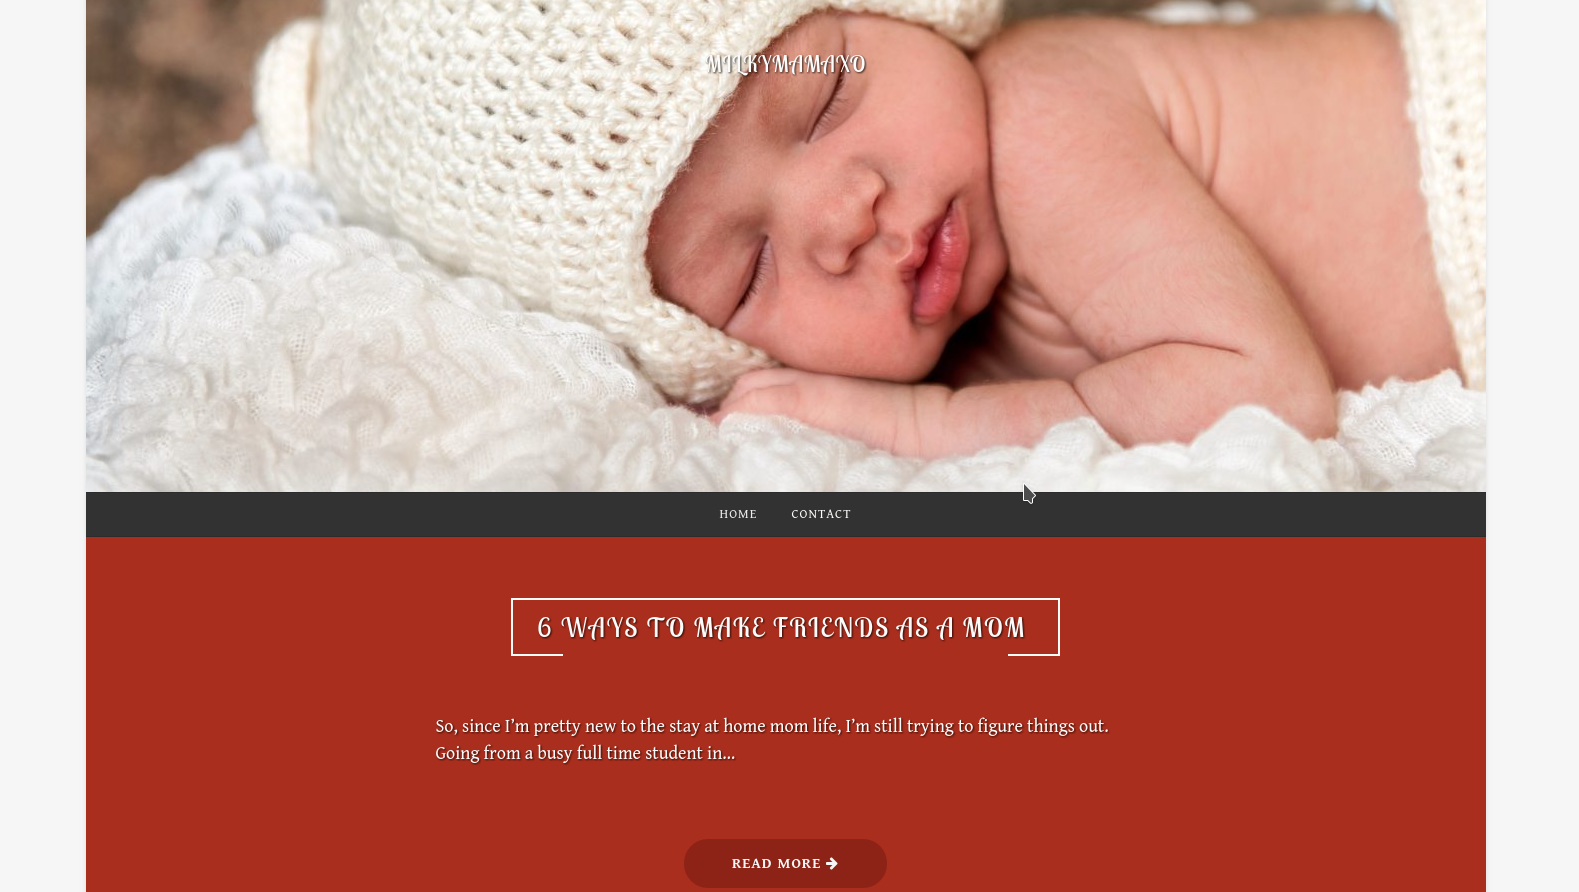 featured, April, 2017, site, website, blog, baby, family, momblogger, mom, inspire, miscarriage, postpartum depression, anxiety, psychosis, marriage, motherhood, pregnancy, childbirth, breastfeeding, infant loss, stay at home mom, sahm, personal, experiences